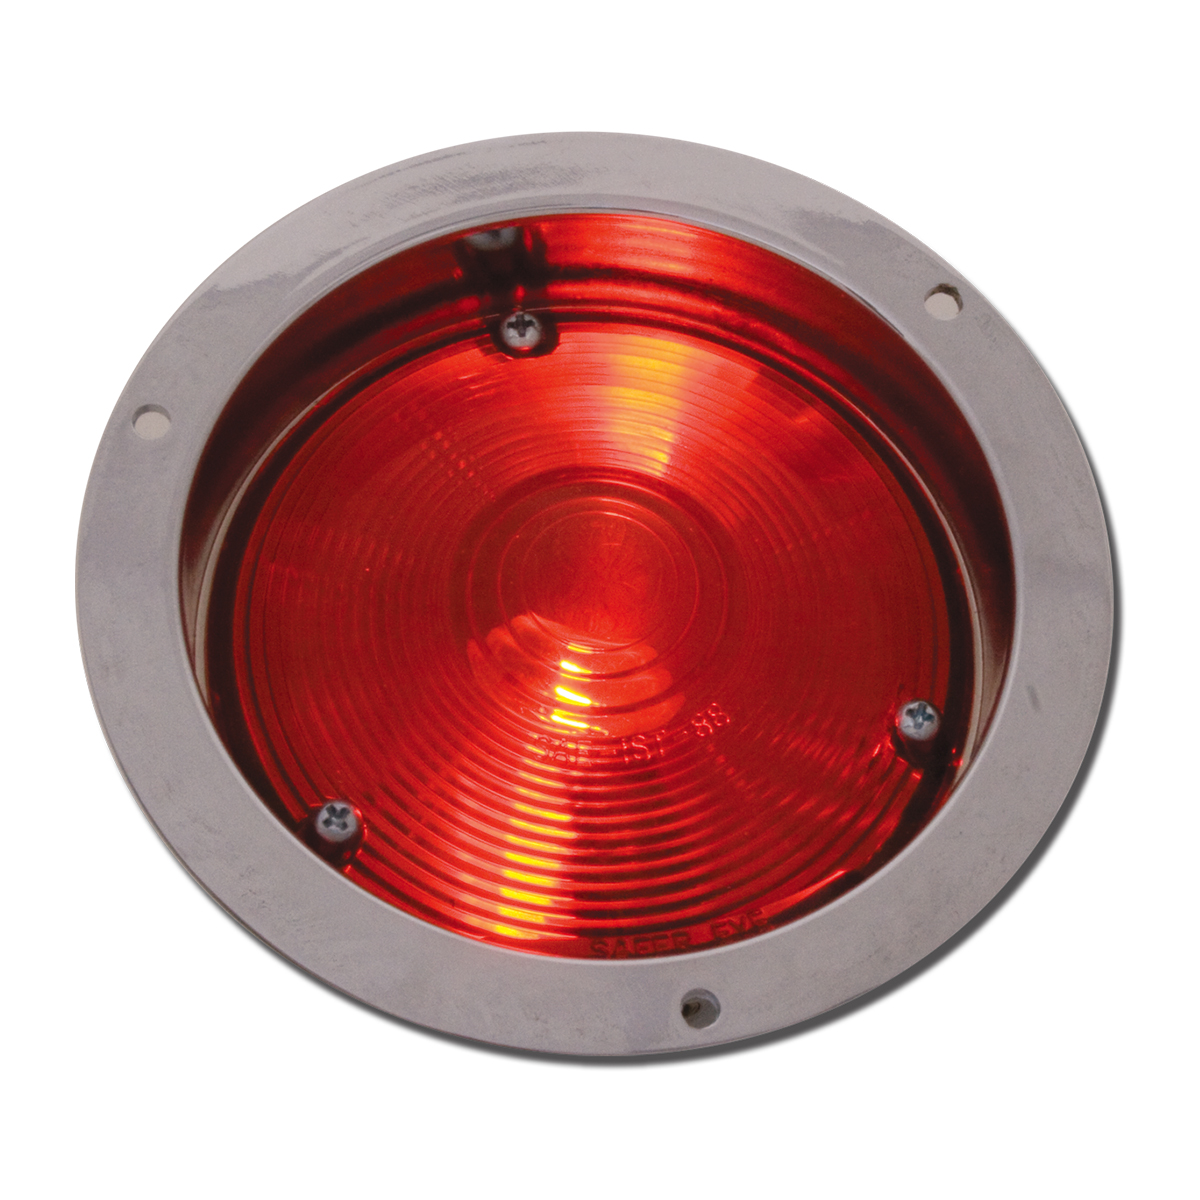 "#80370 4"" Round Incandescent C.R. Housing Red/Red Light"